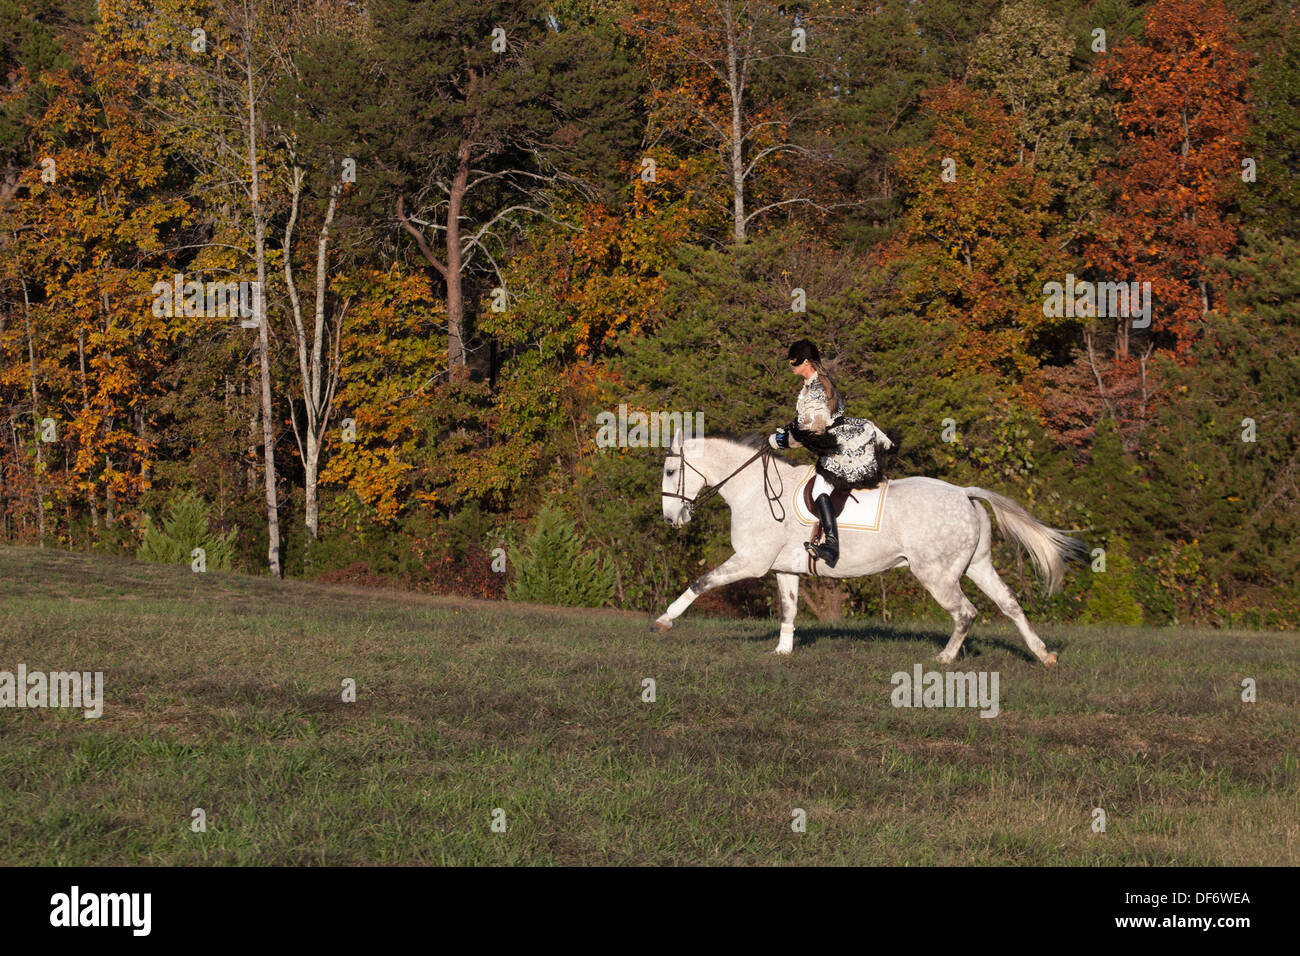 Masked woman in  costume riding gray horse in countryside - Stock Image